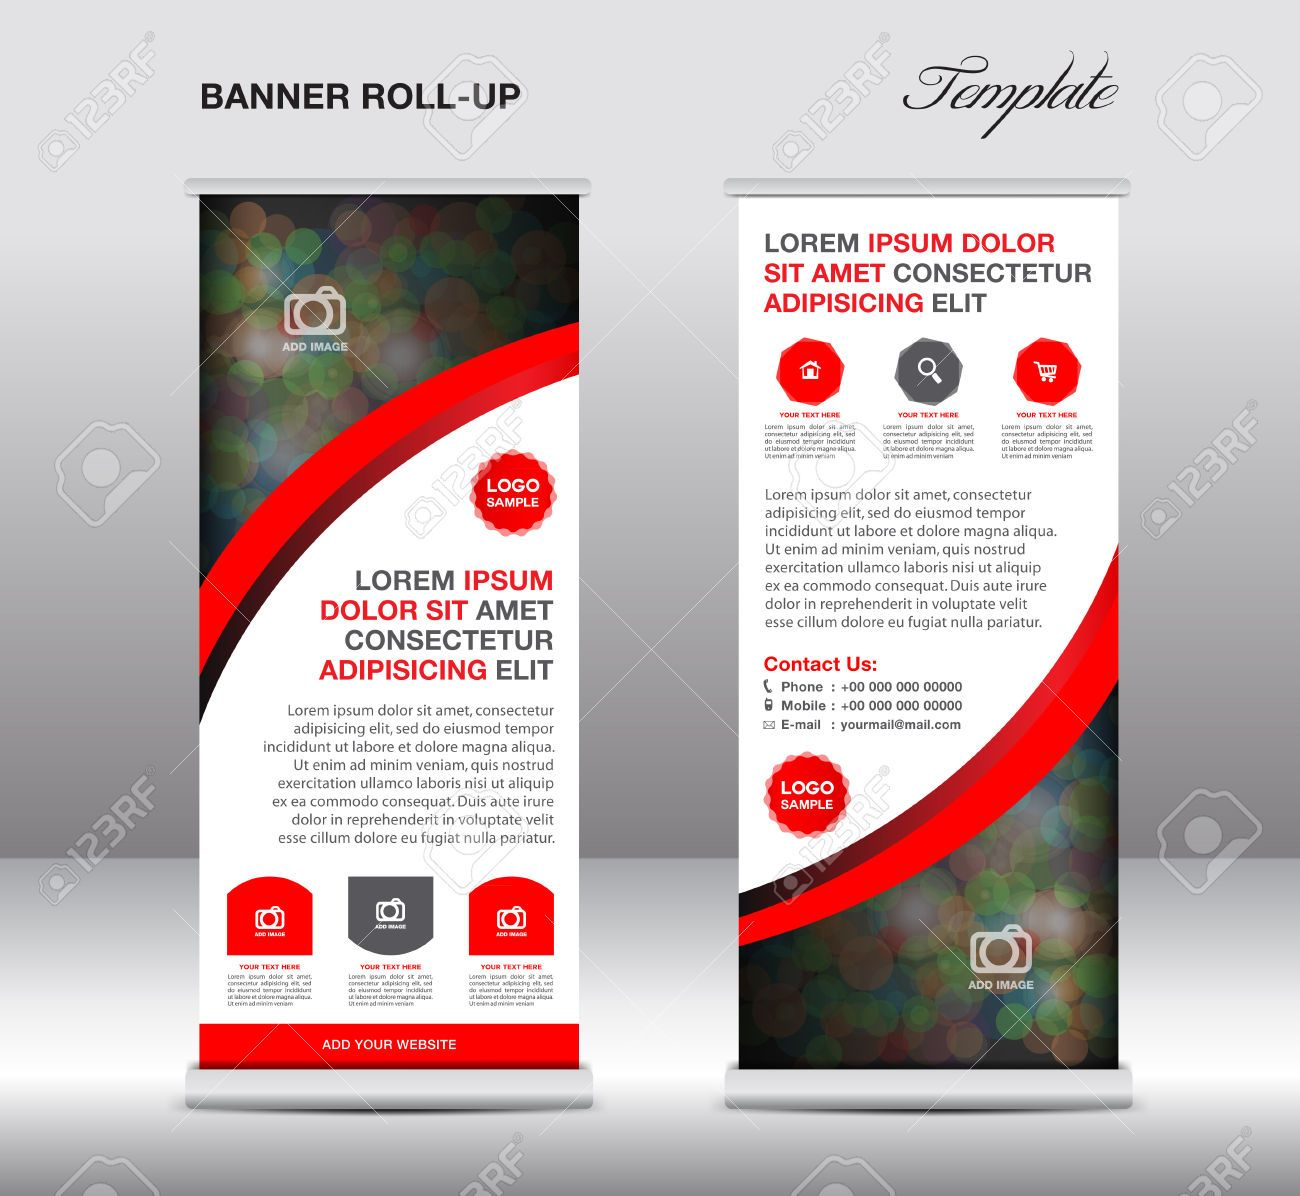 Stand Up Banner Designs : Green and blue roll up banner stand template design